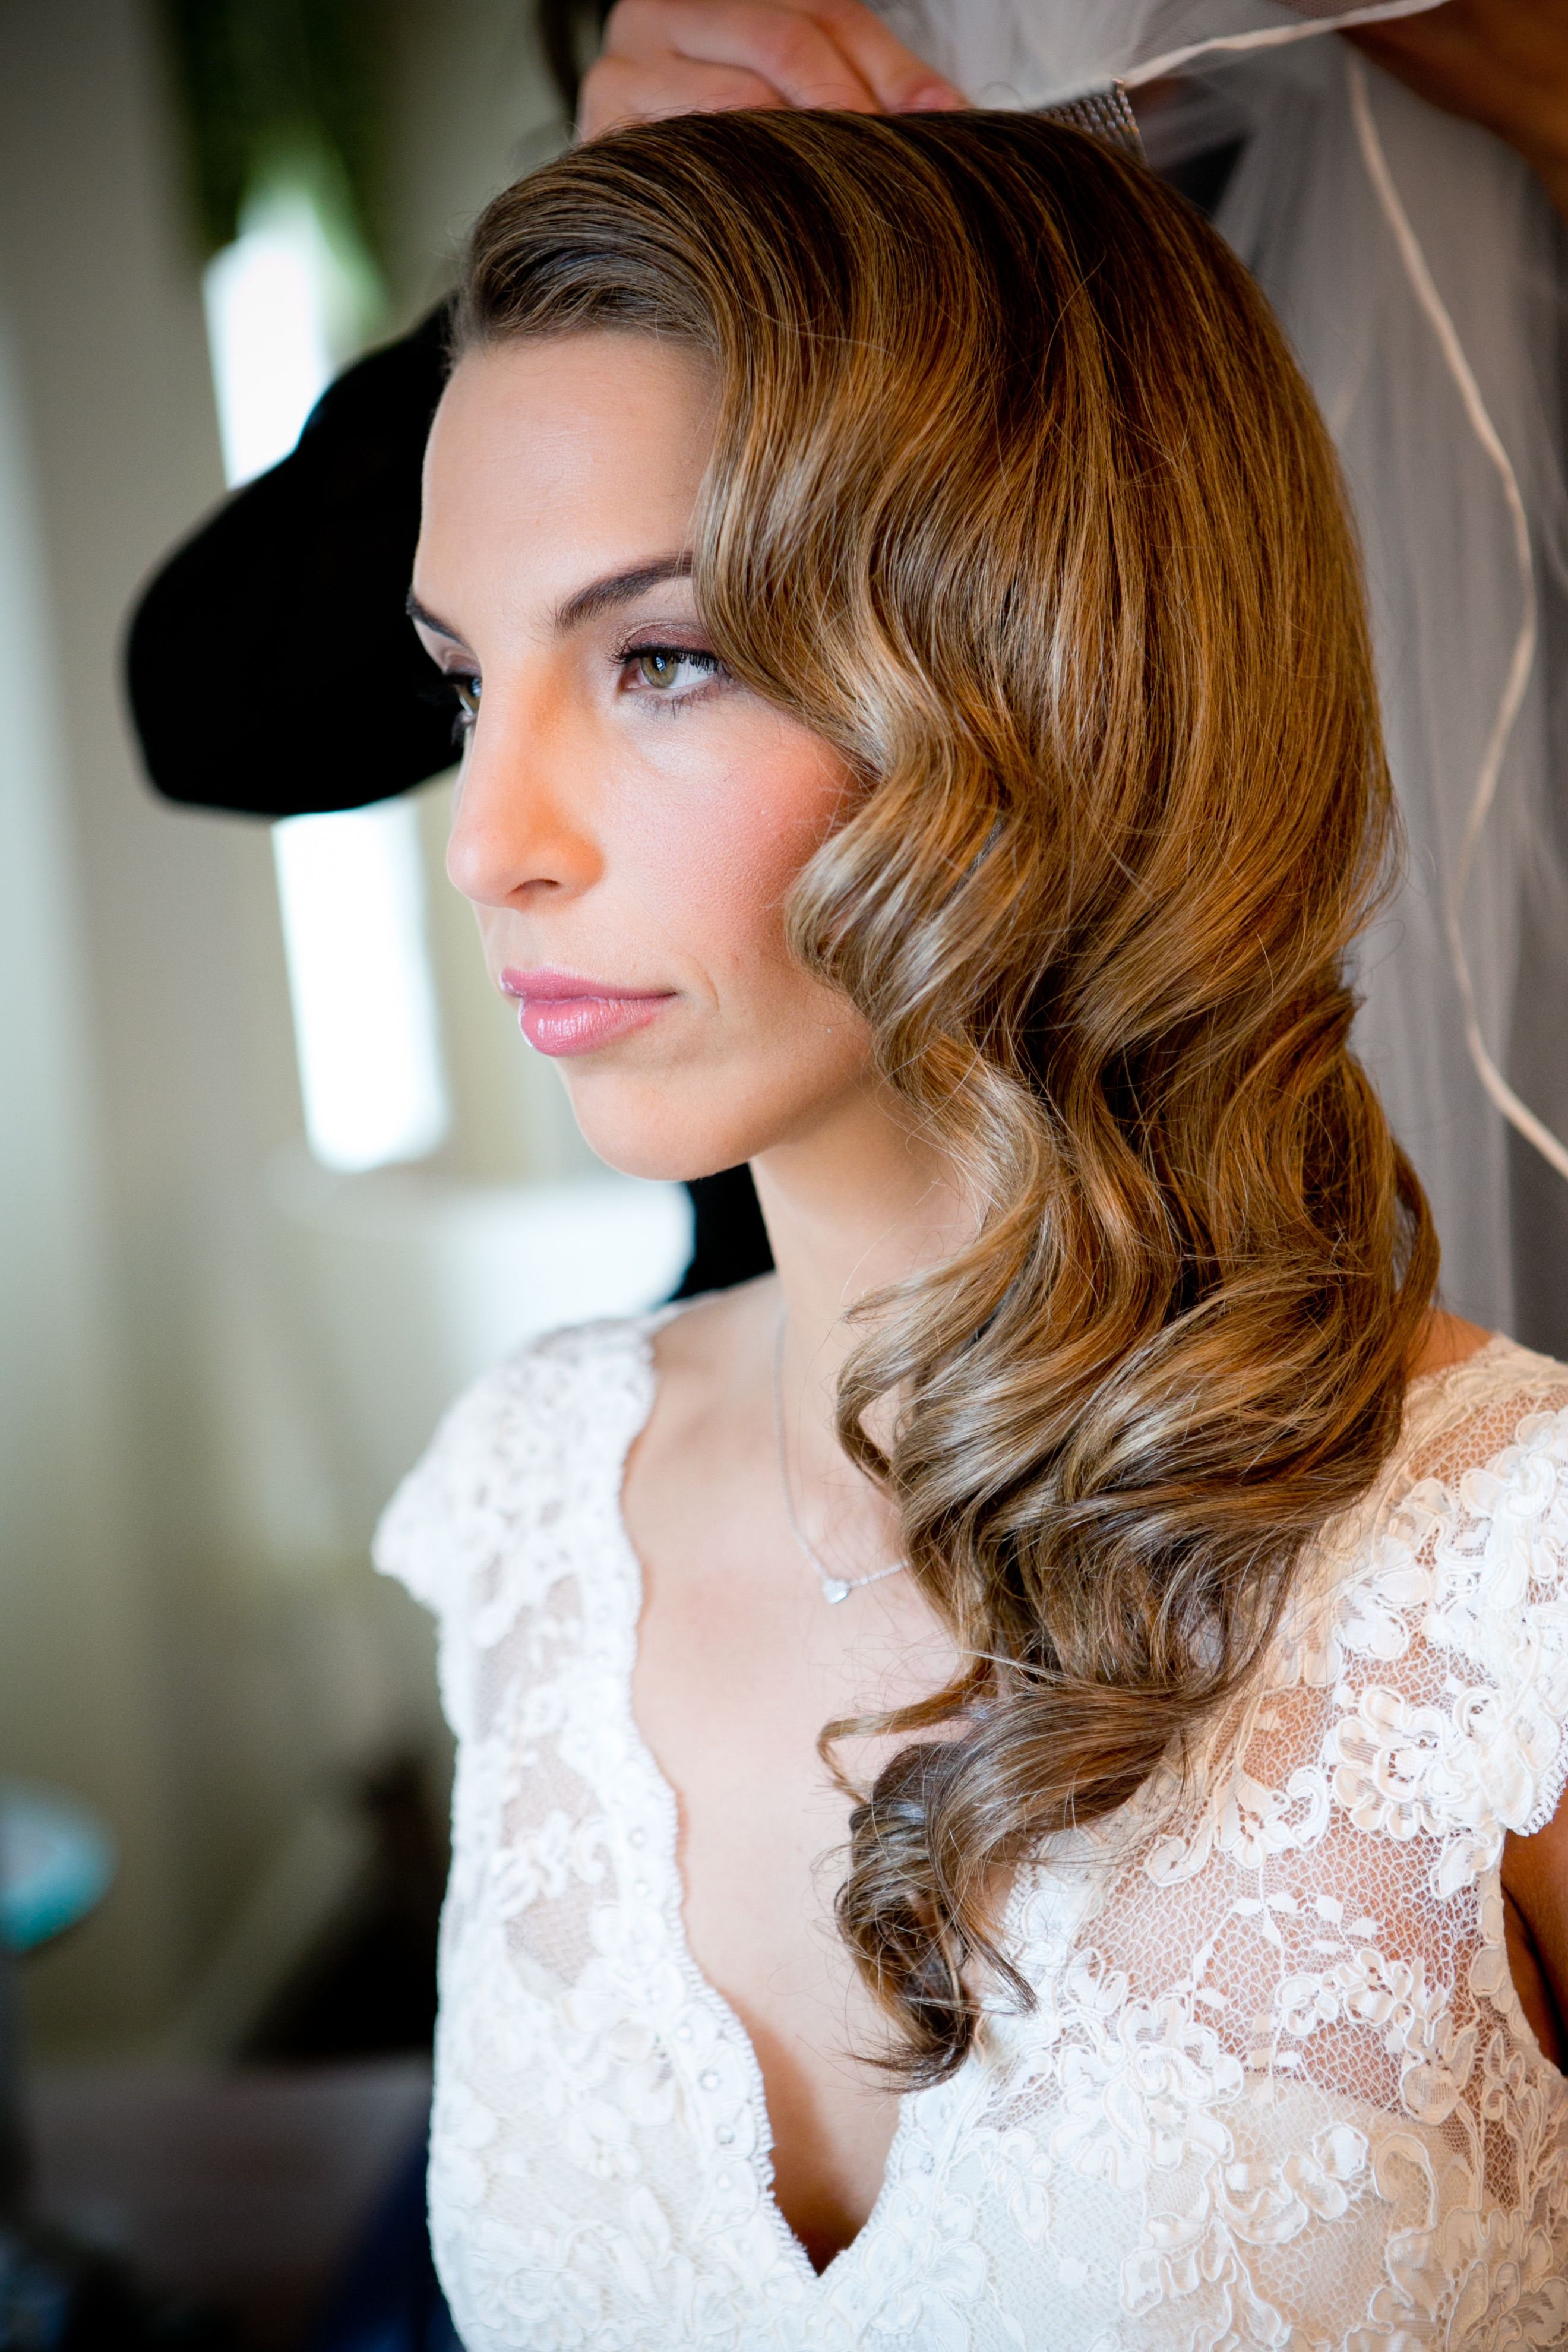 Beauty, Real Weddings, Wedding Style, Makeup, Down, Wavy Hair, Spring Weddings, City Real Weddings, Classic Real Weddings, Midwest Real Weddings, Spring Real Weddings, City Weddings